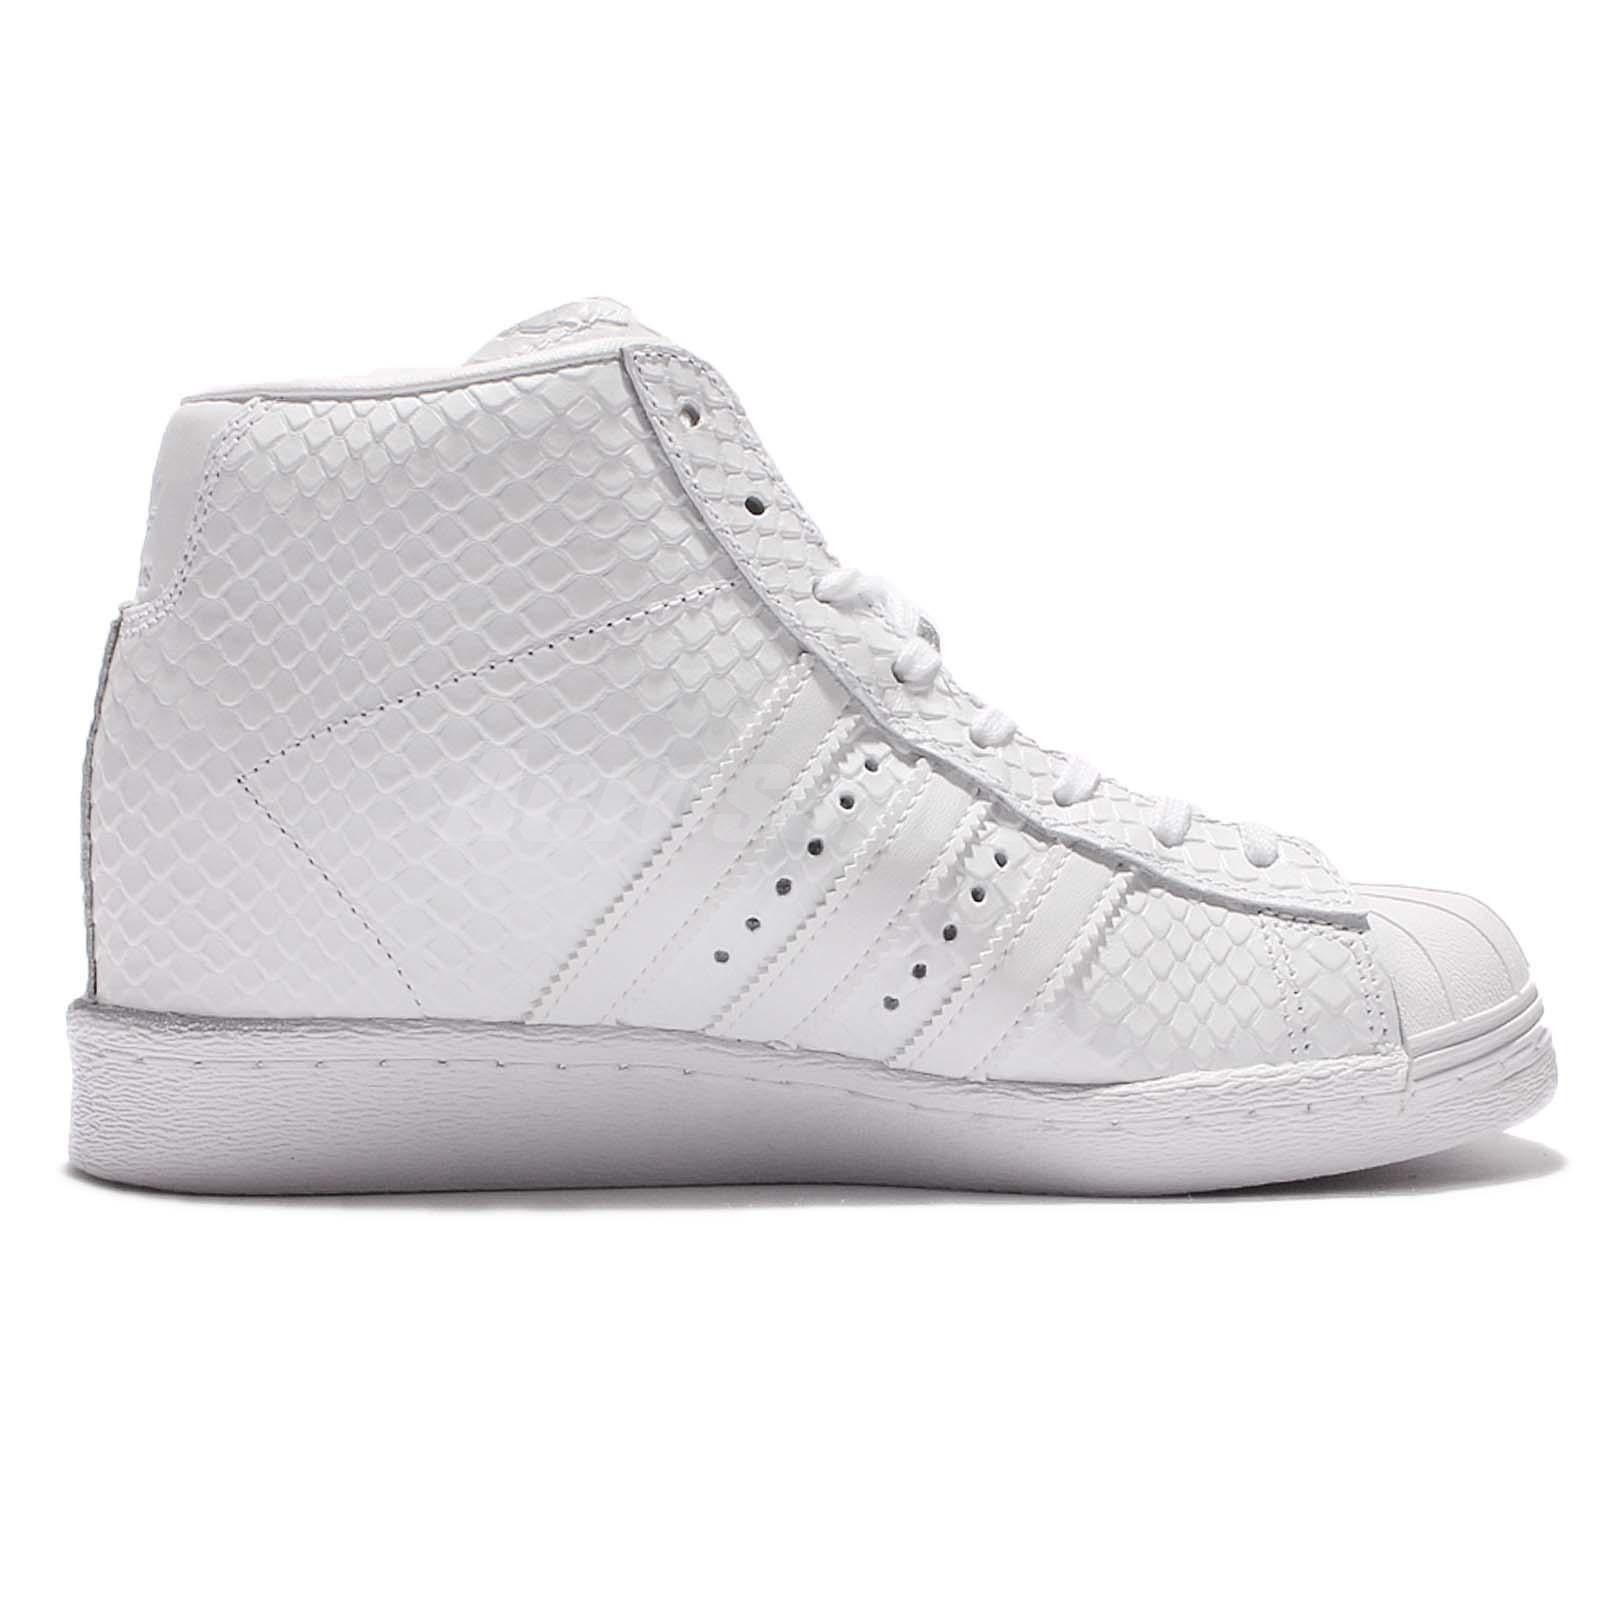 e82446925c4 Adidas Originals SUPERSTAR UP STRAP S81350